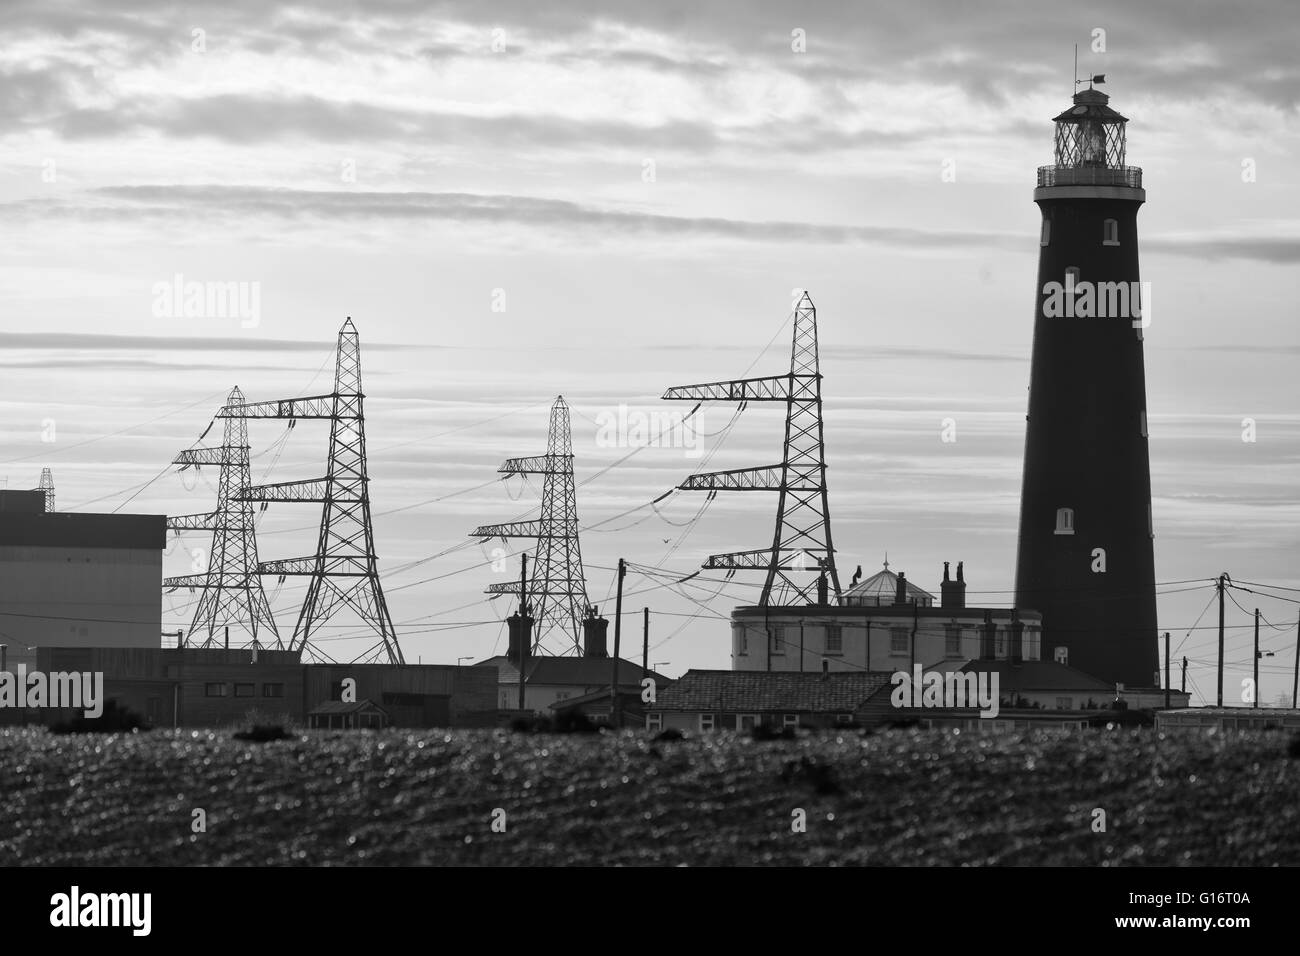 Dungeness Lighthouse with electricity pylons and power station. - Stock Image